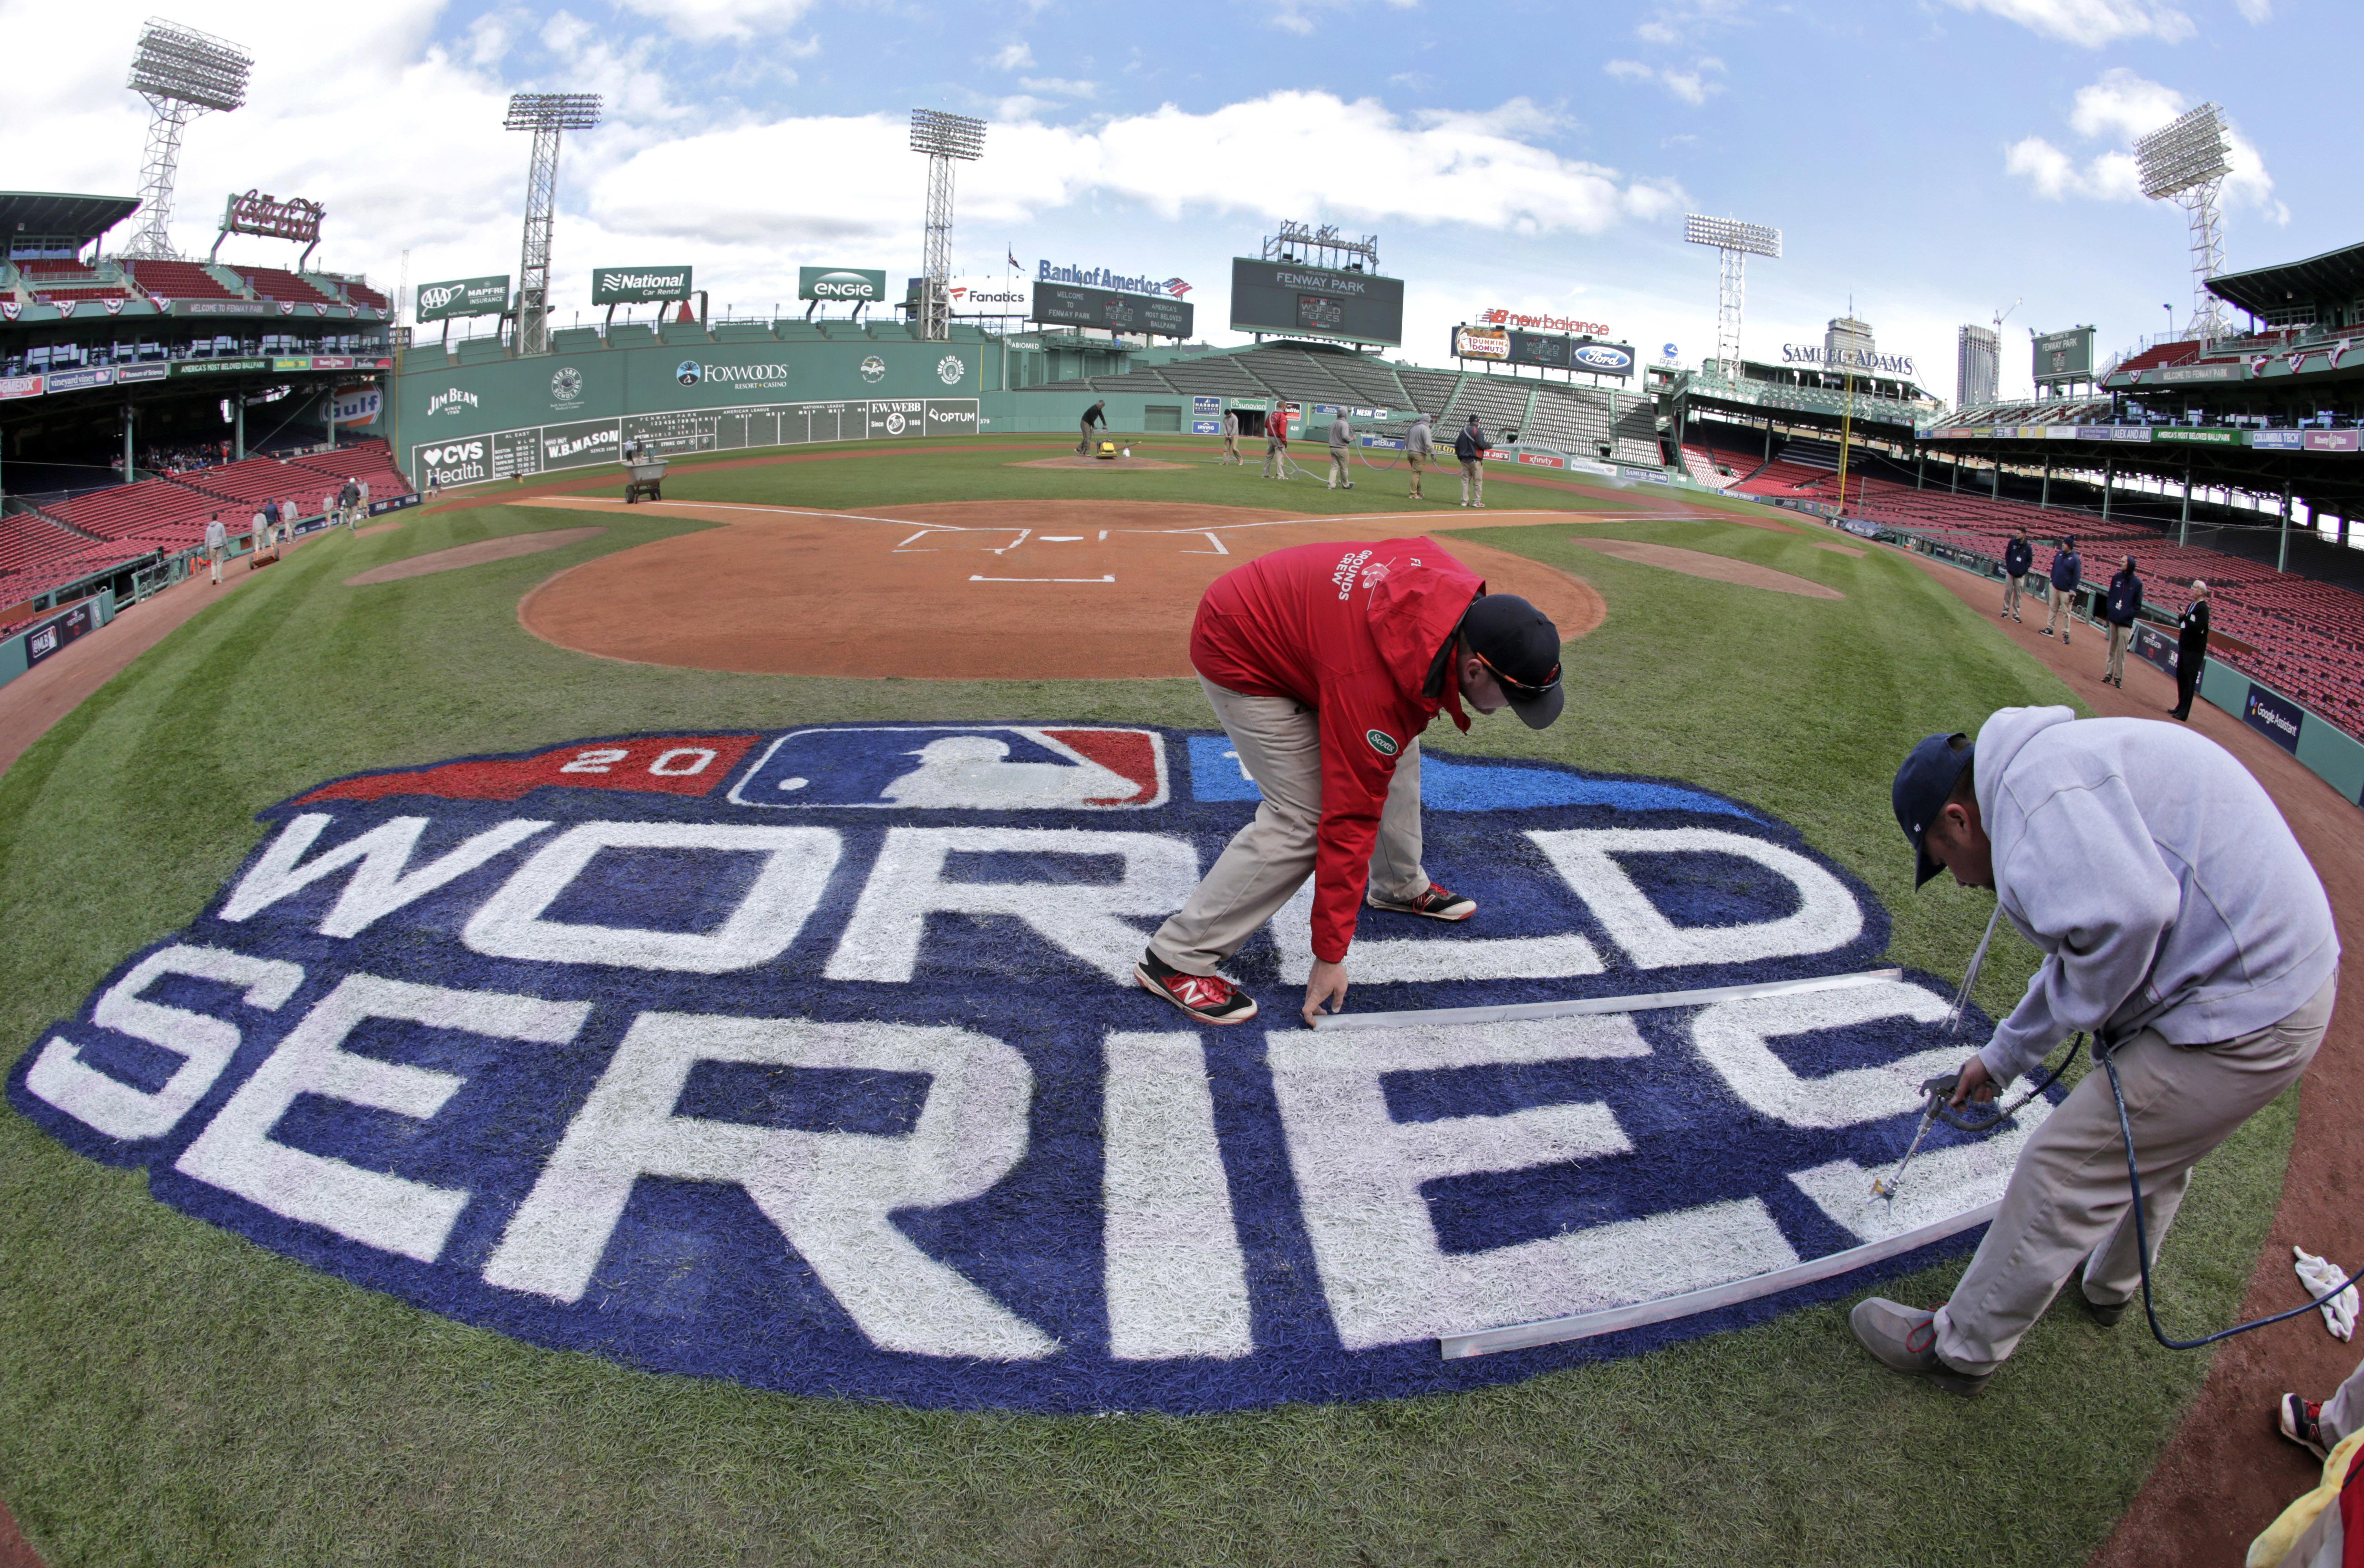 Dodgers-Red Sox: Rich histories, but little crossover | SWX